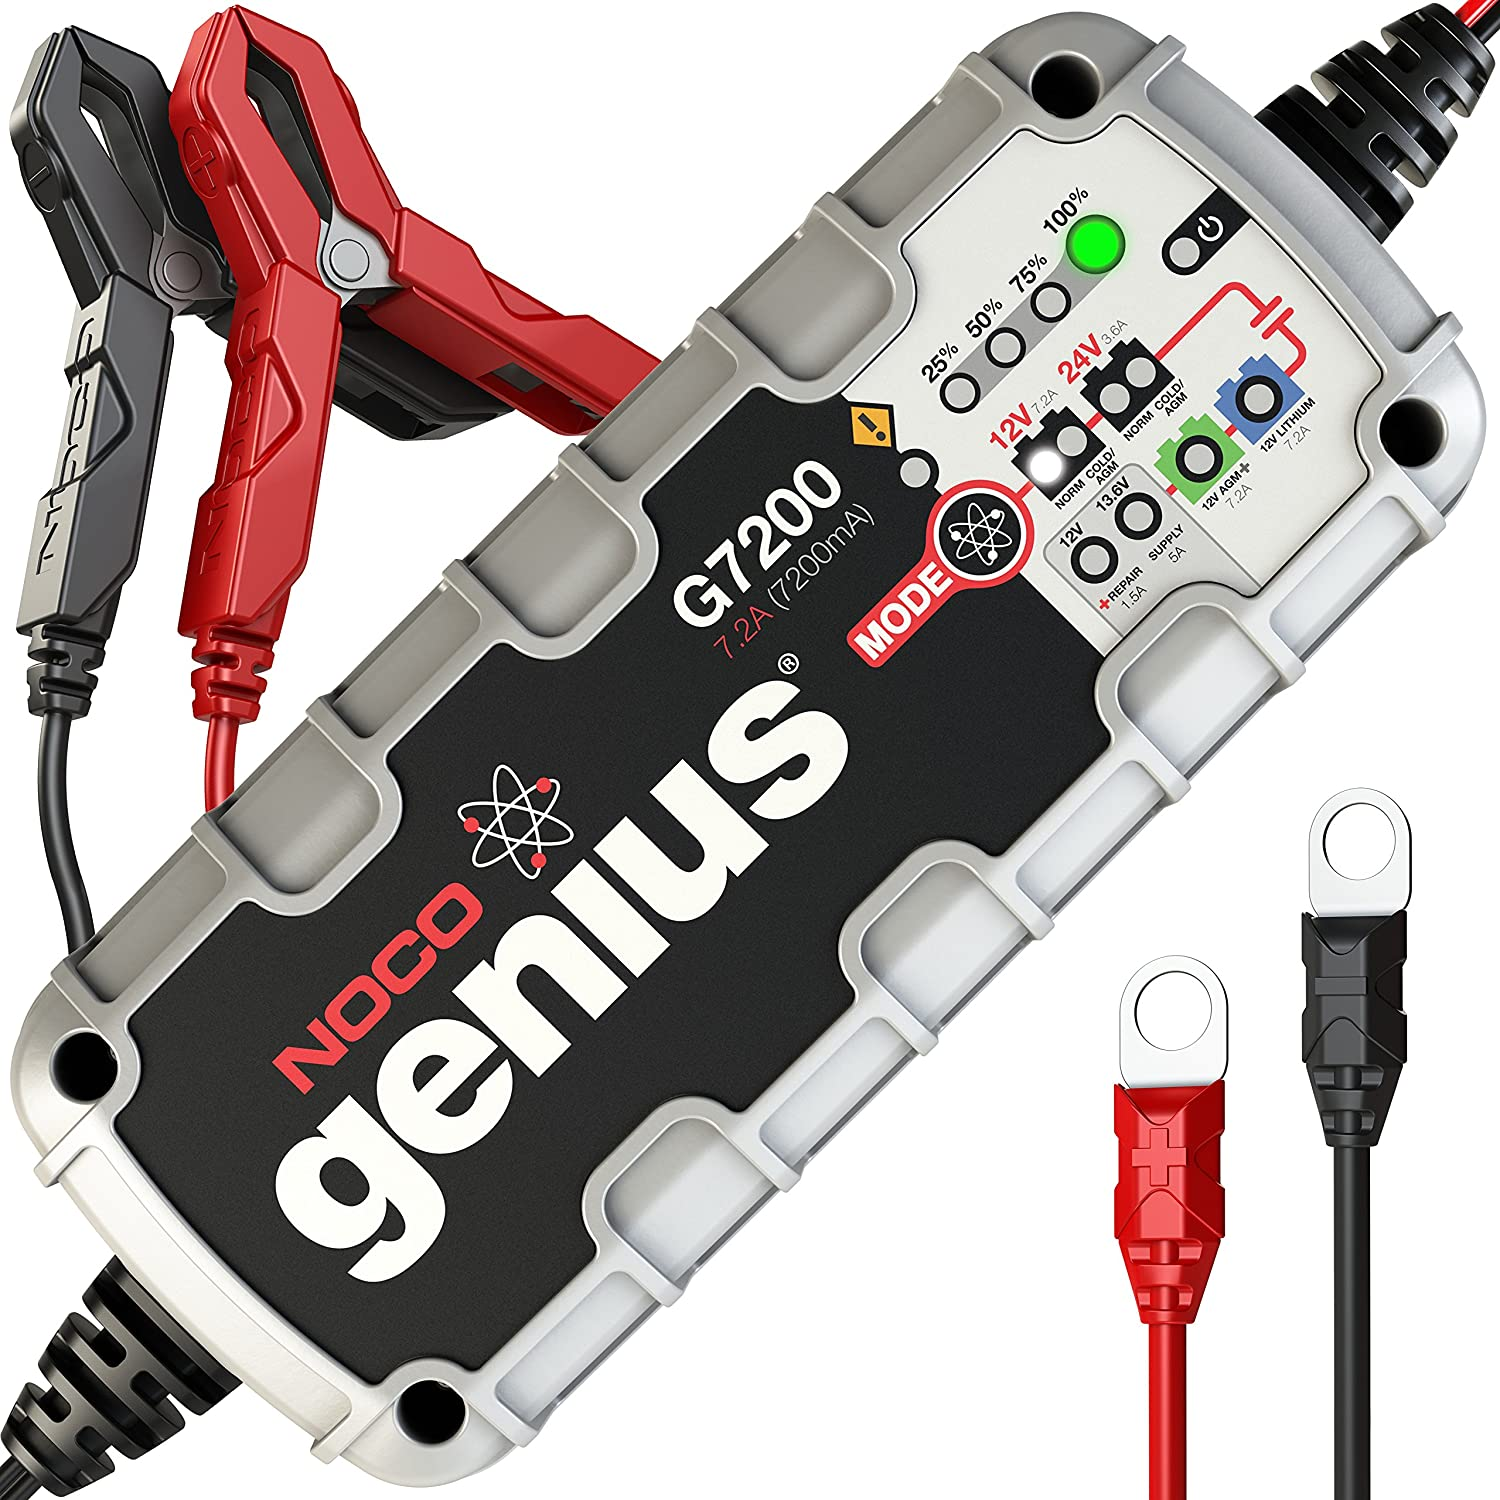 Noco Genius G7200 12v 24v 72a Ultrasafe Smart Battery Here Is A Simple Circuit For Charging Car The Charger Automotive